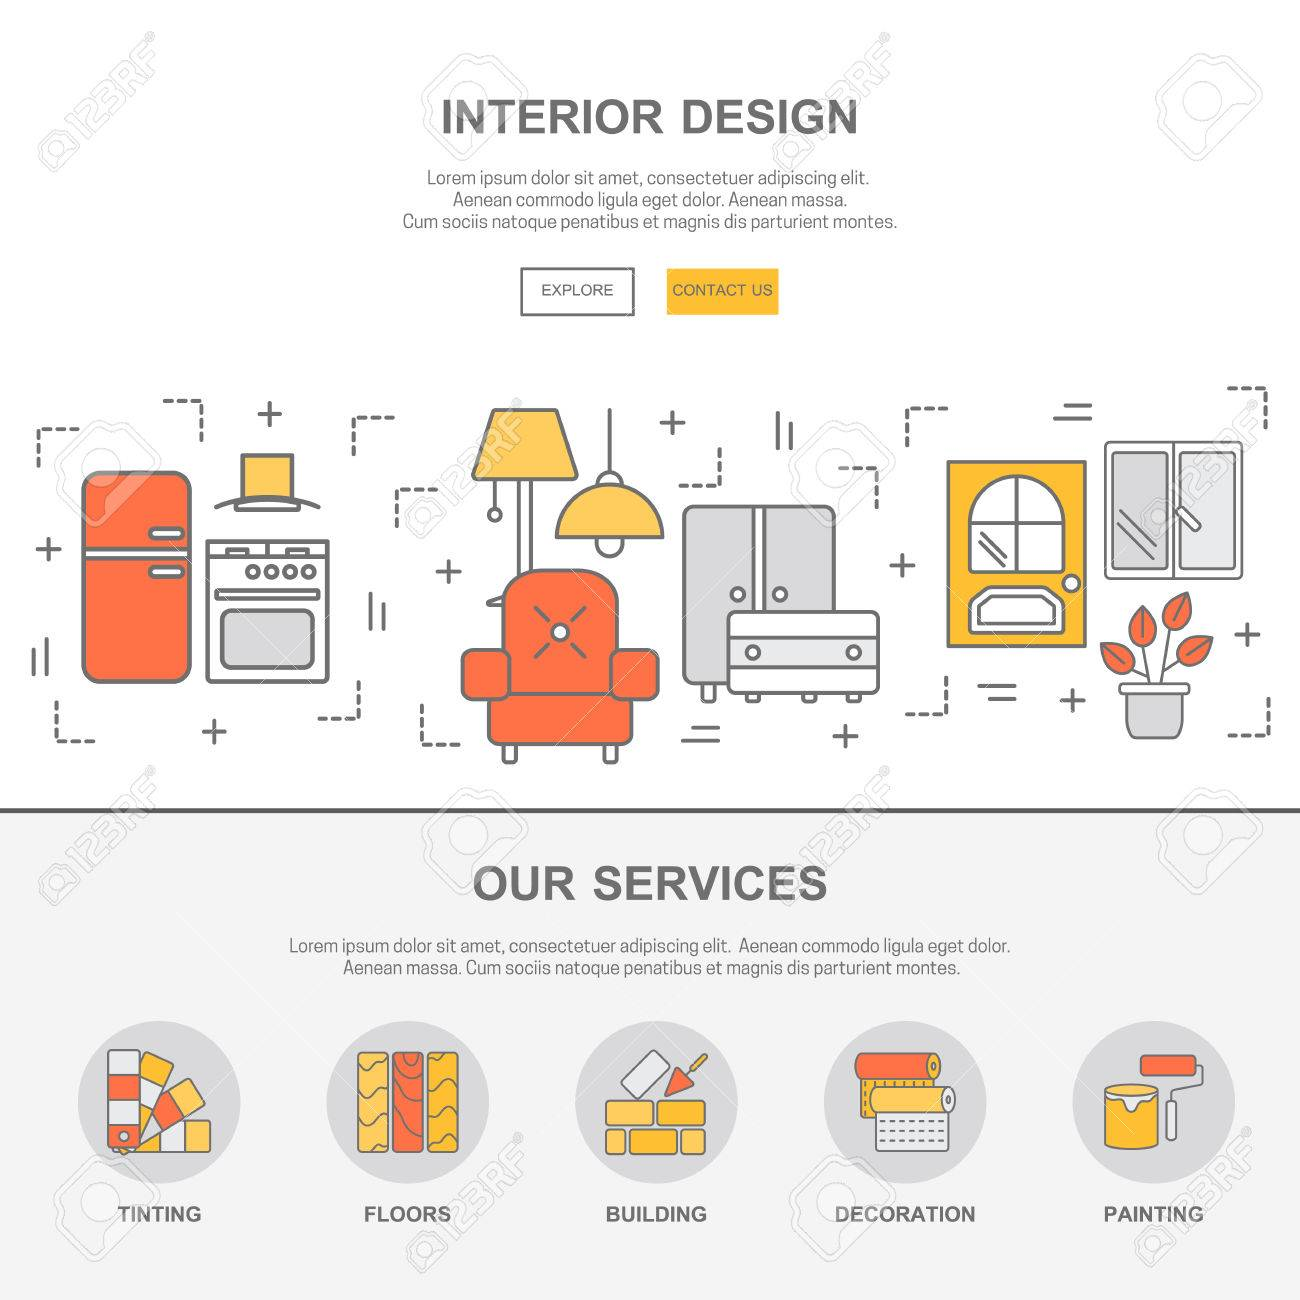 Web Design Template With Thin Line Icons Of Interior Design